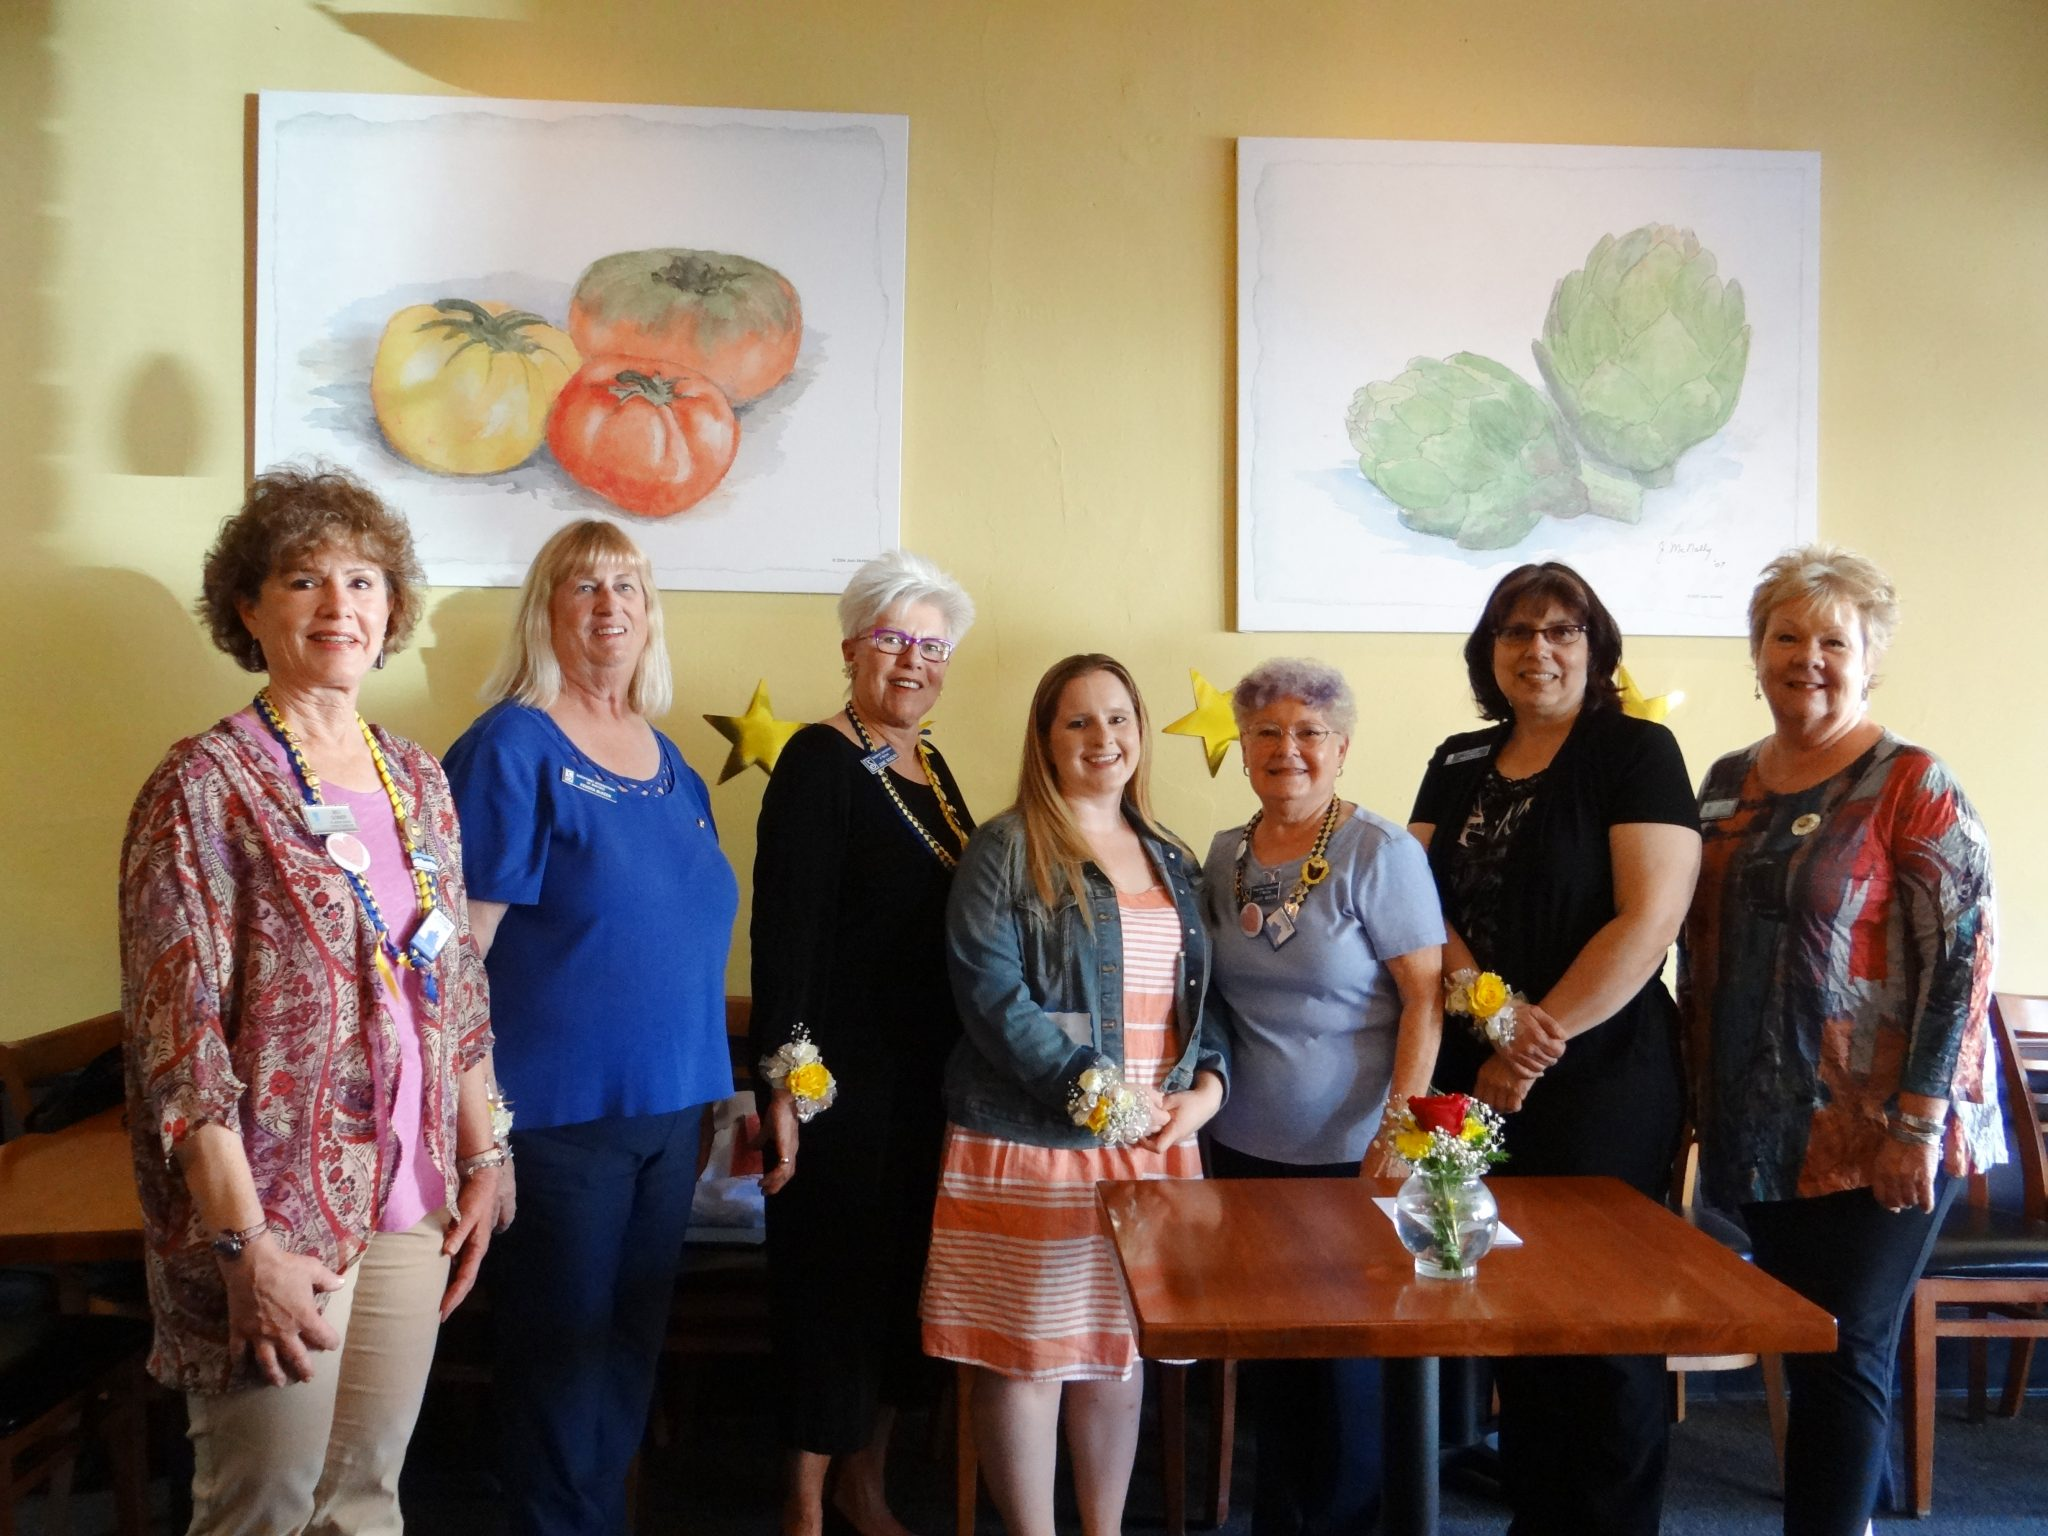 From left: District II Director Beverly Gomer; Vice President Kendra McKeen; Treasurer June Rogers; Secretary Sara Lawson; President Judy Moon; Club Director Ann Stanley; and Governor Elect Pam Parker at Haute Stuff restaurant in Martinez. (COURTESY / On File)